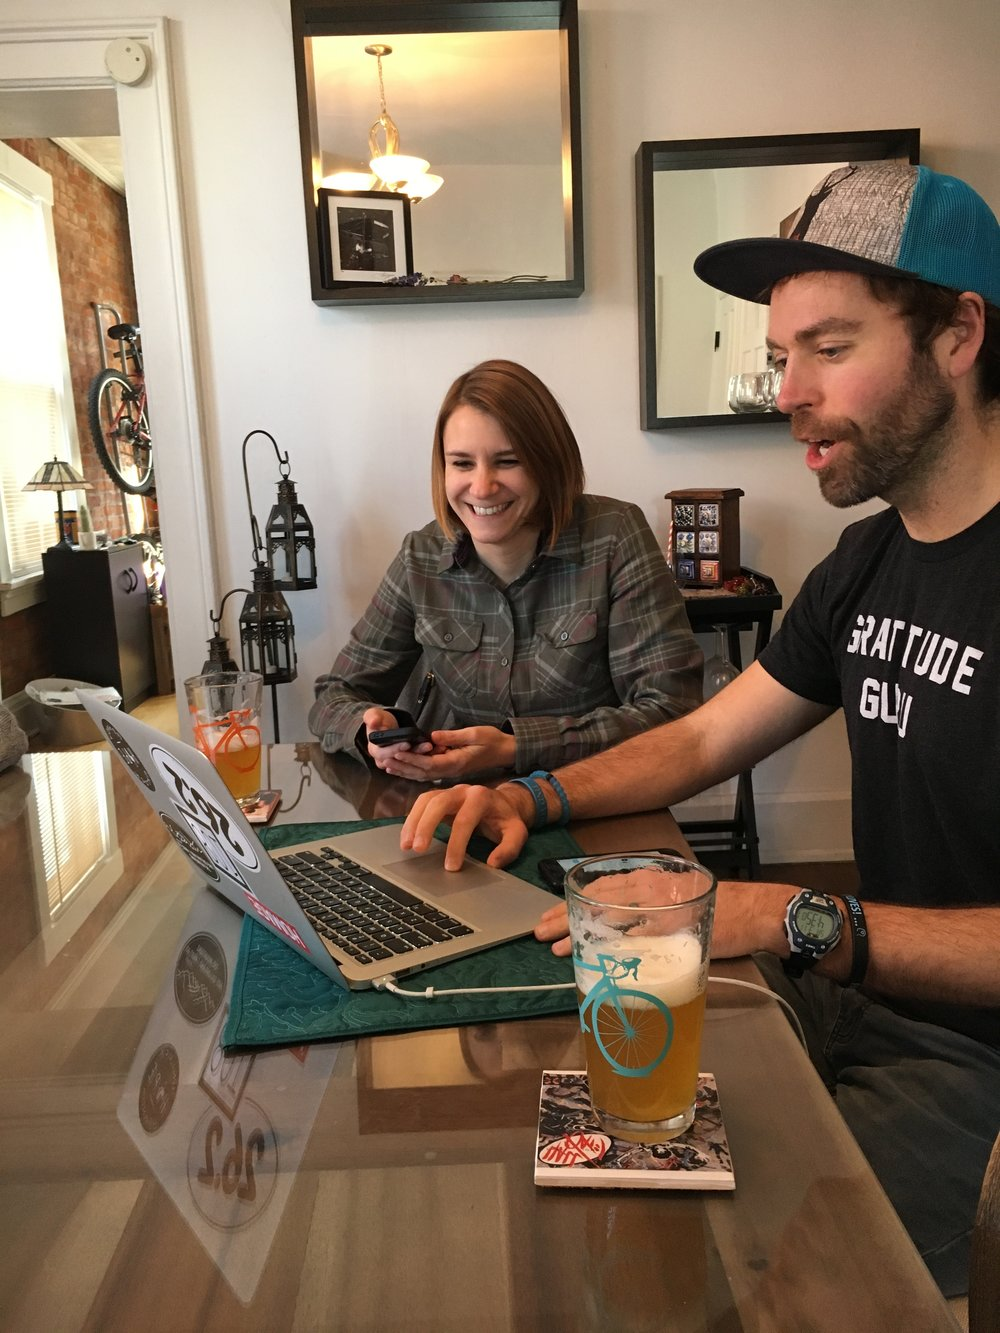 Laughter happens when you mix in craft beer, good people, and podcasting recordings!